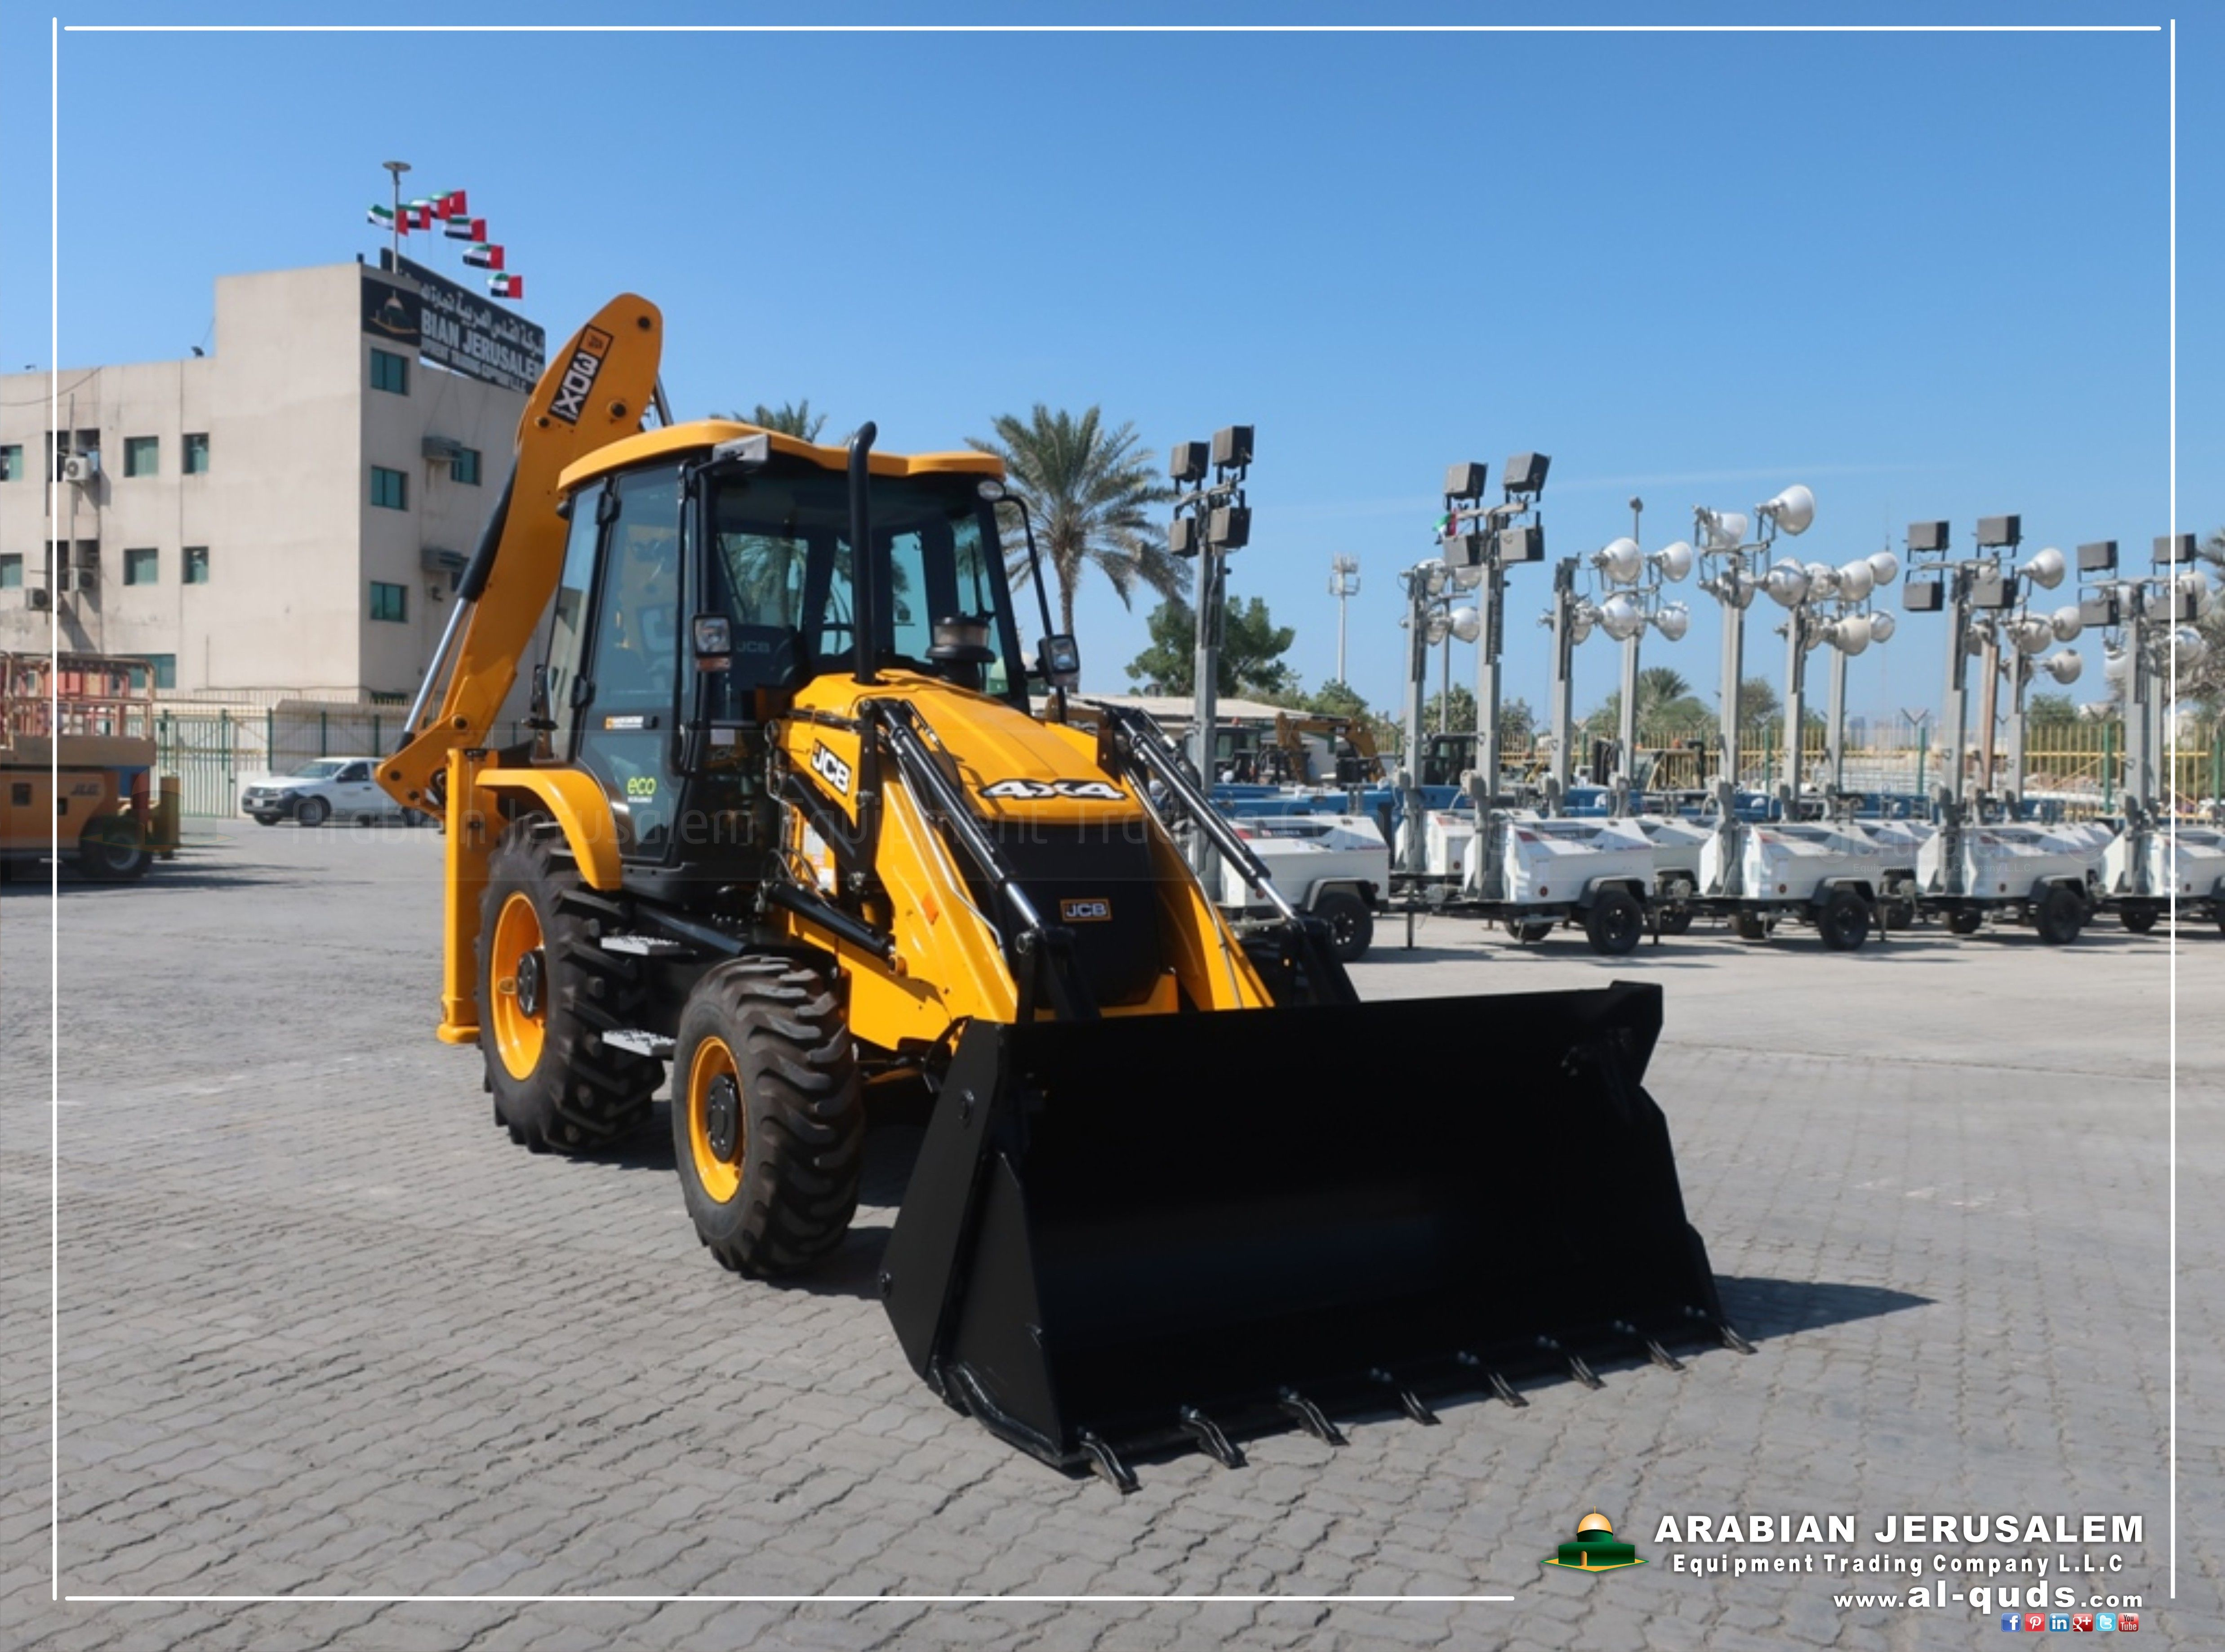 Cb Backhoe Loader 3dx 2018 Available In Our Yard For More Details Images And Price Inquiry Click Heavy Equipment Automotive Marketing Heavy Machinery